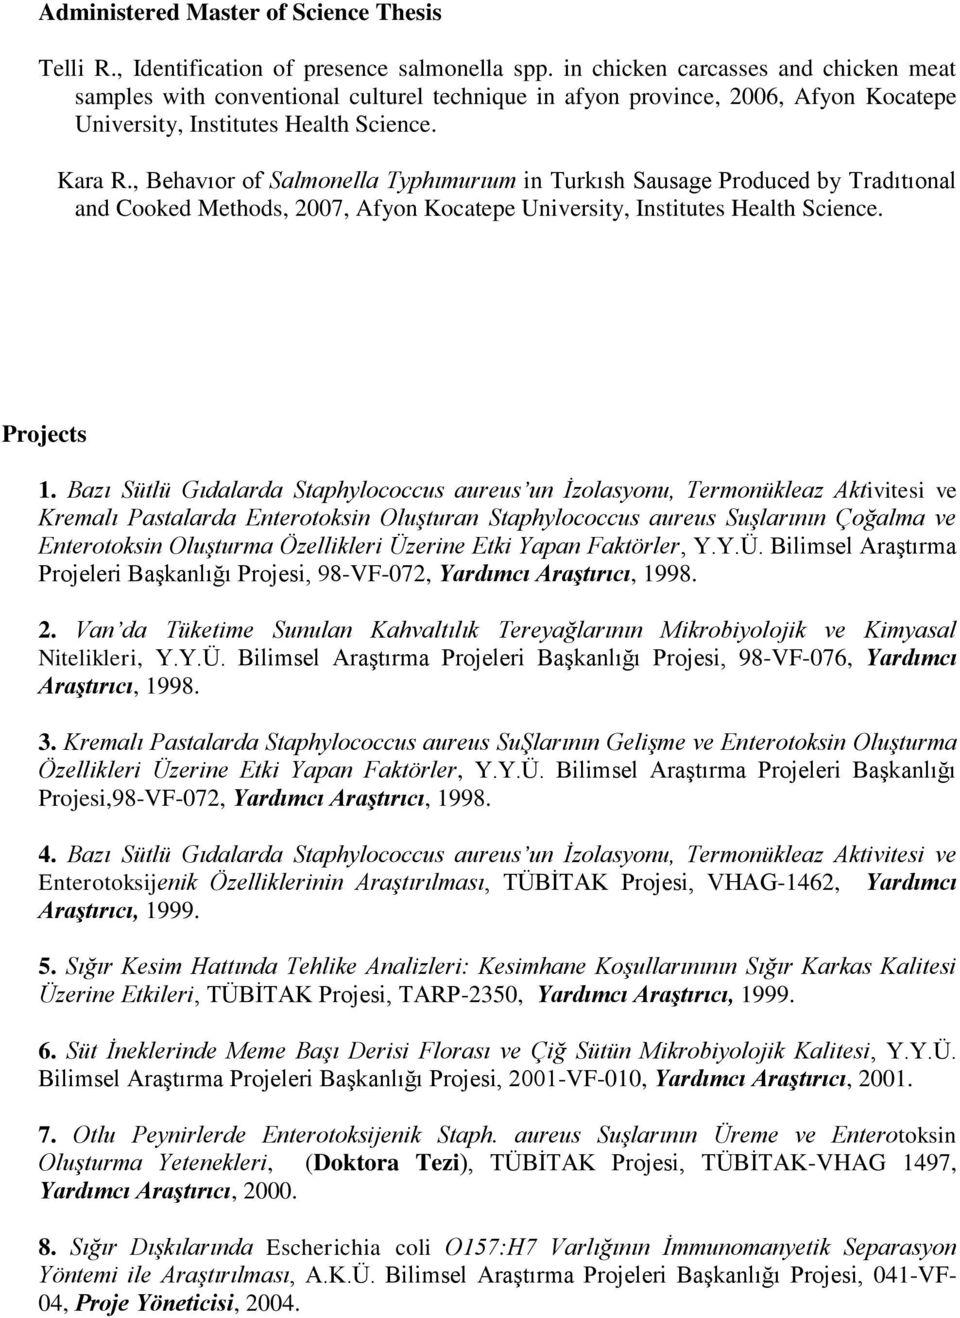 , Behavıor of Salmonella Typhımurıum in Turkısh Sausage Produced by Tradıtıonal and Cooked Methods, 2007, Afyon Kocatepe University, Institutes Health Science. Projects 1.